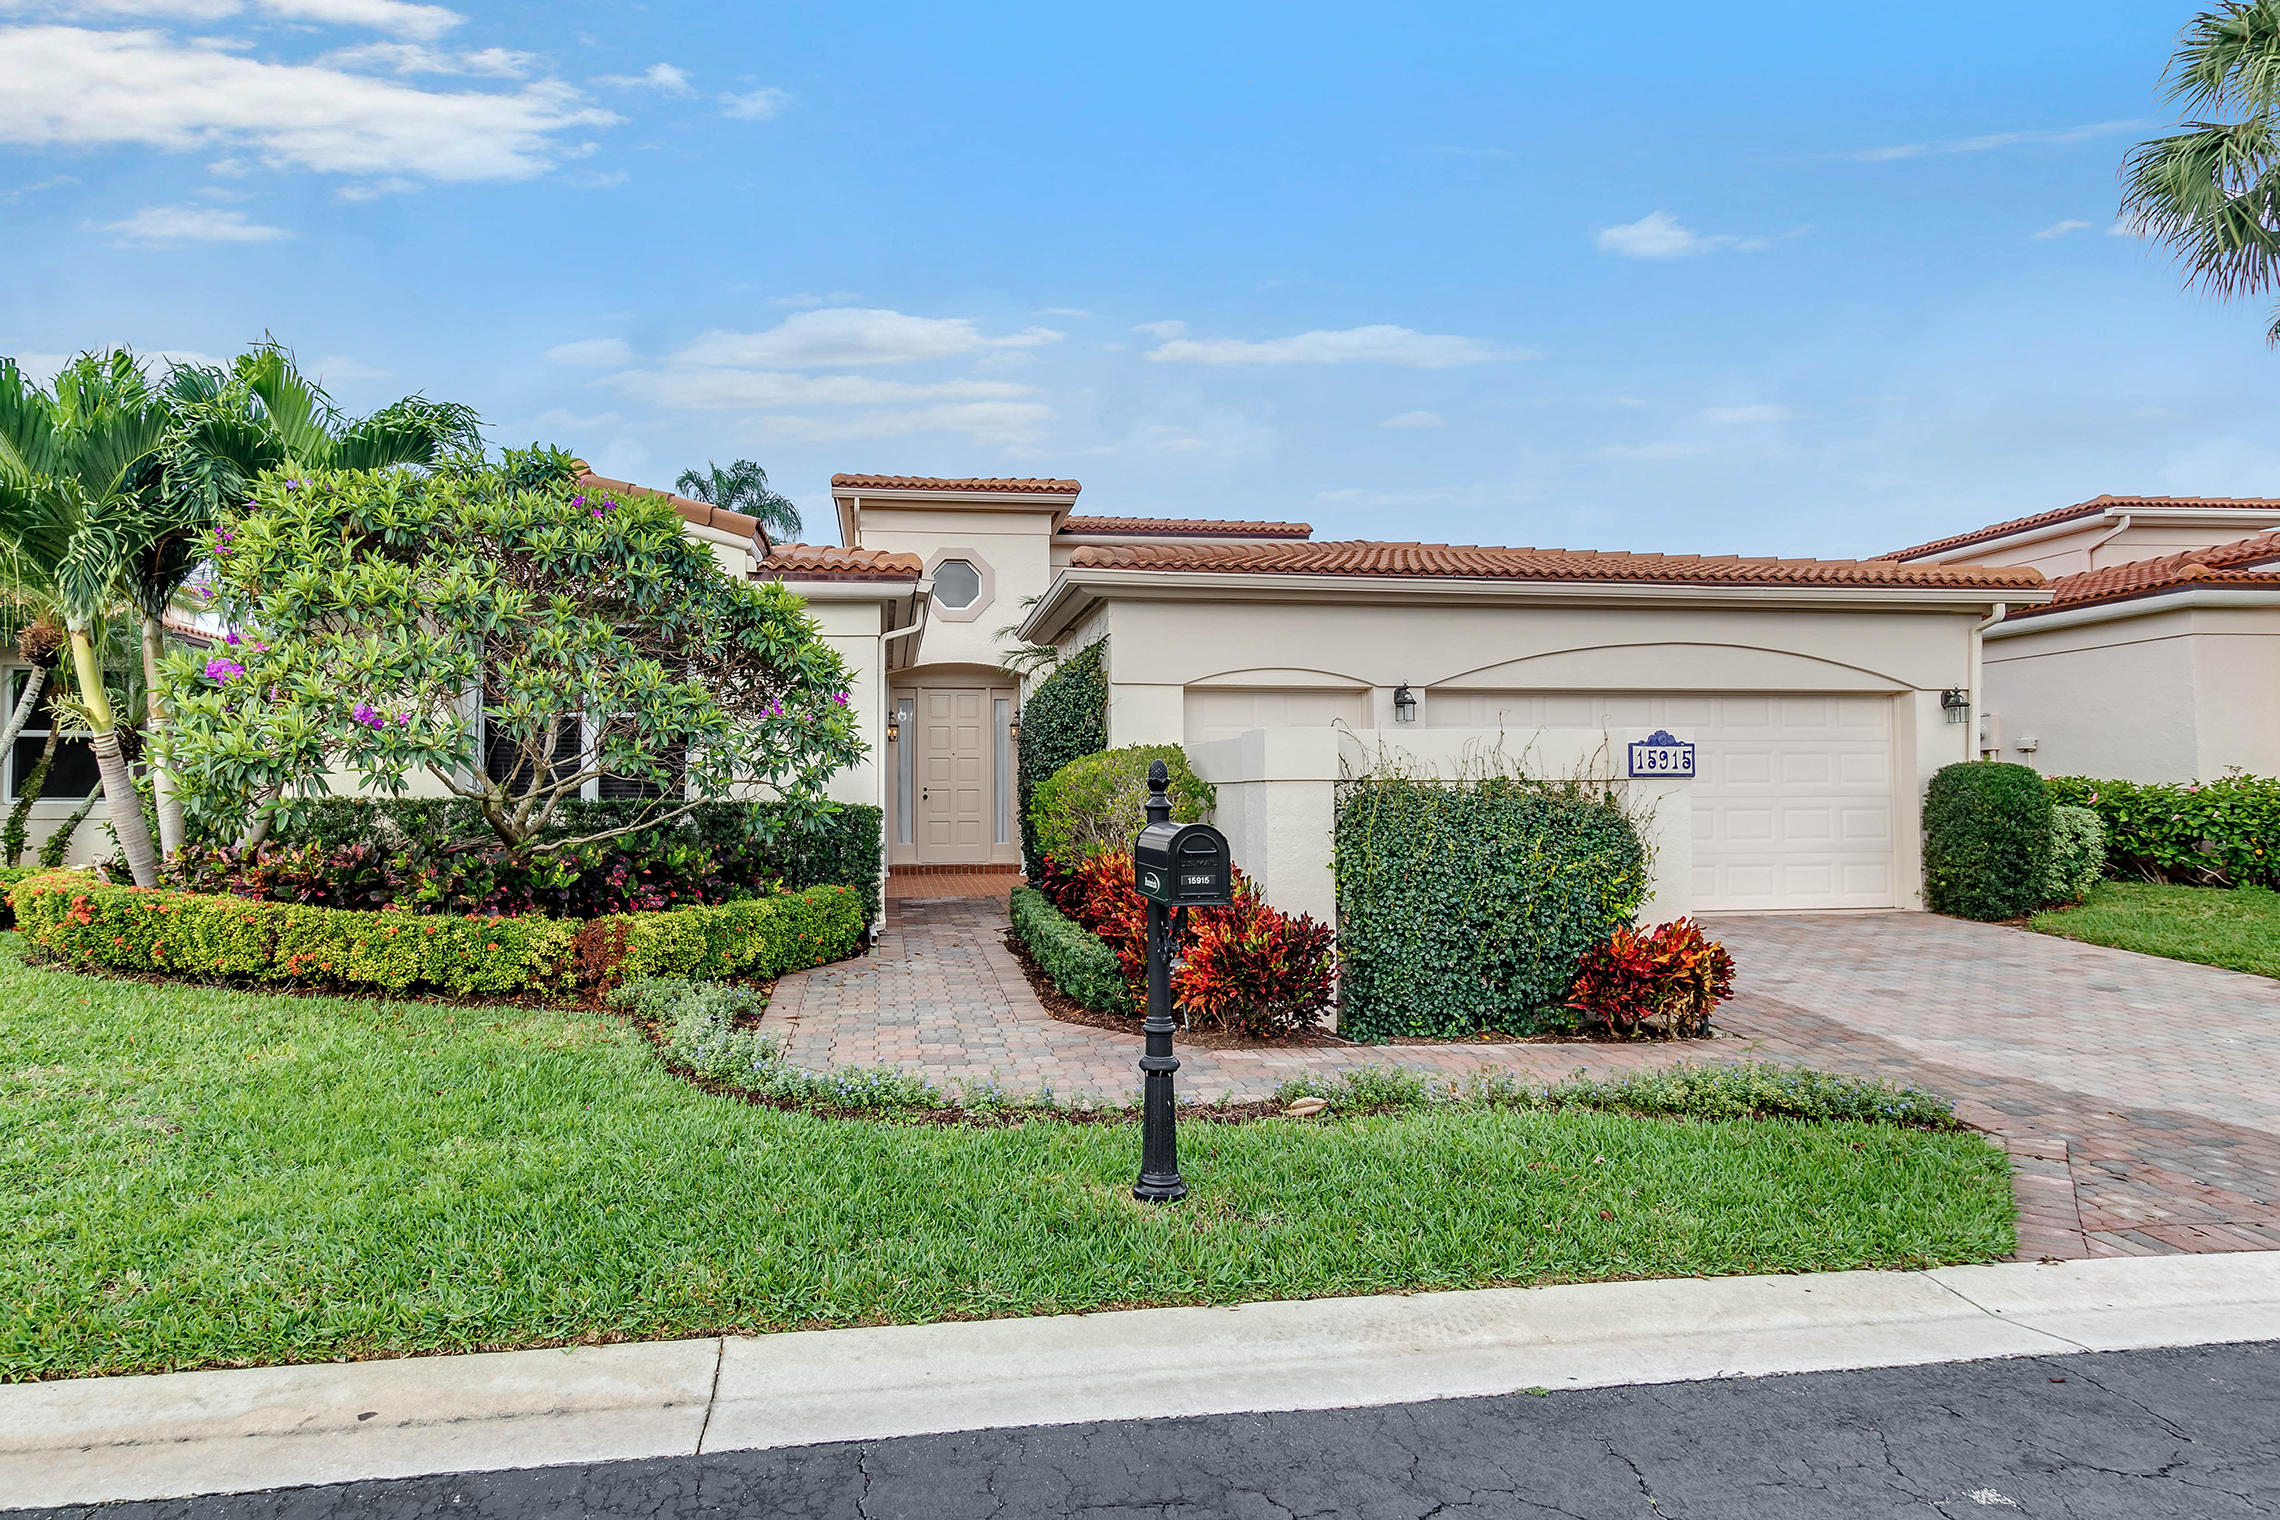 15915 Westerly Terrace, Jupiter, Florida 33477, 3 Bedrooms Bedrooms, ,2.1 BathroomsBathrooms,A,Single family,Westerly,RX-10603205